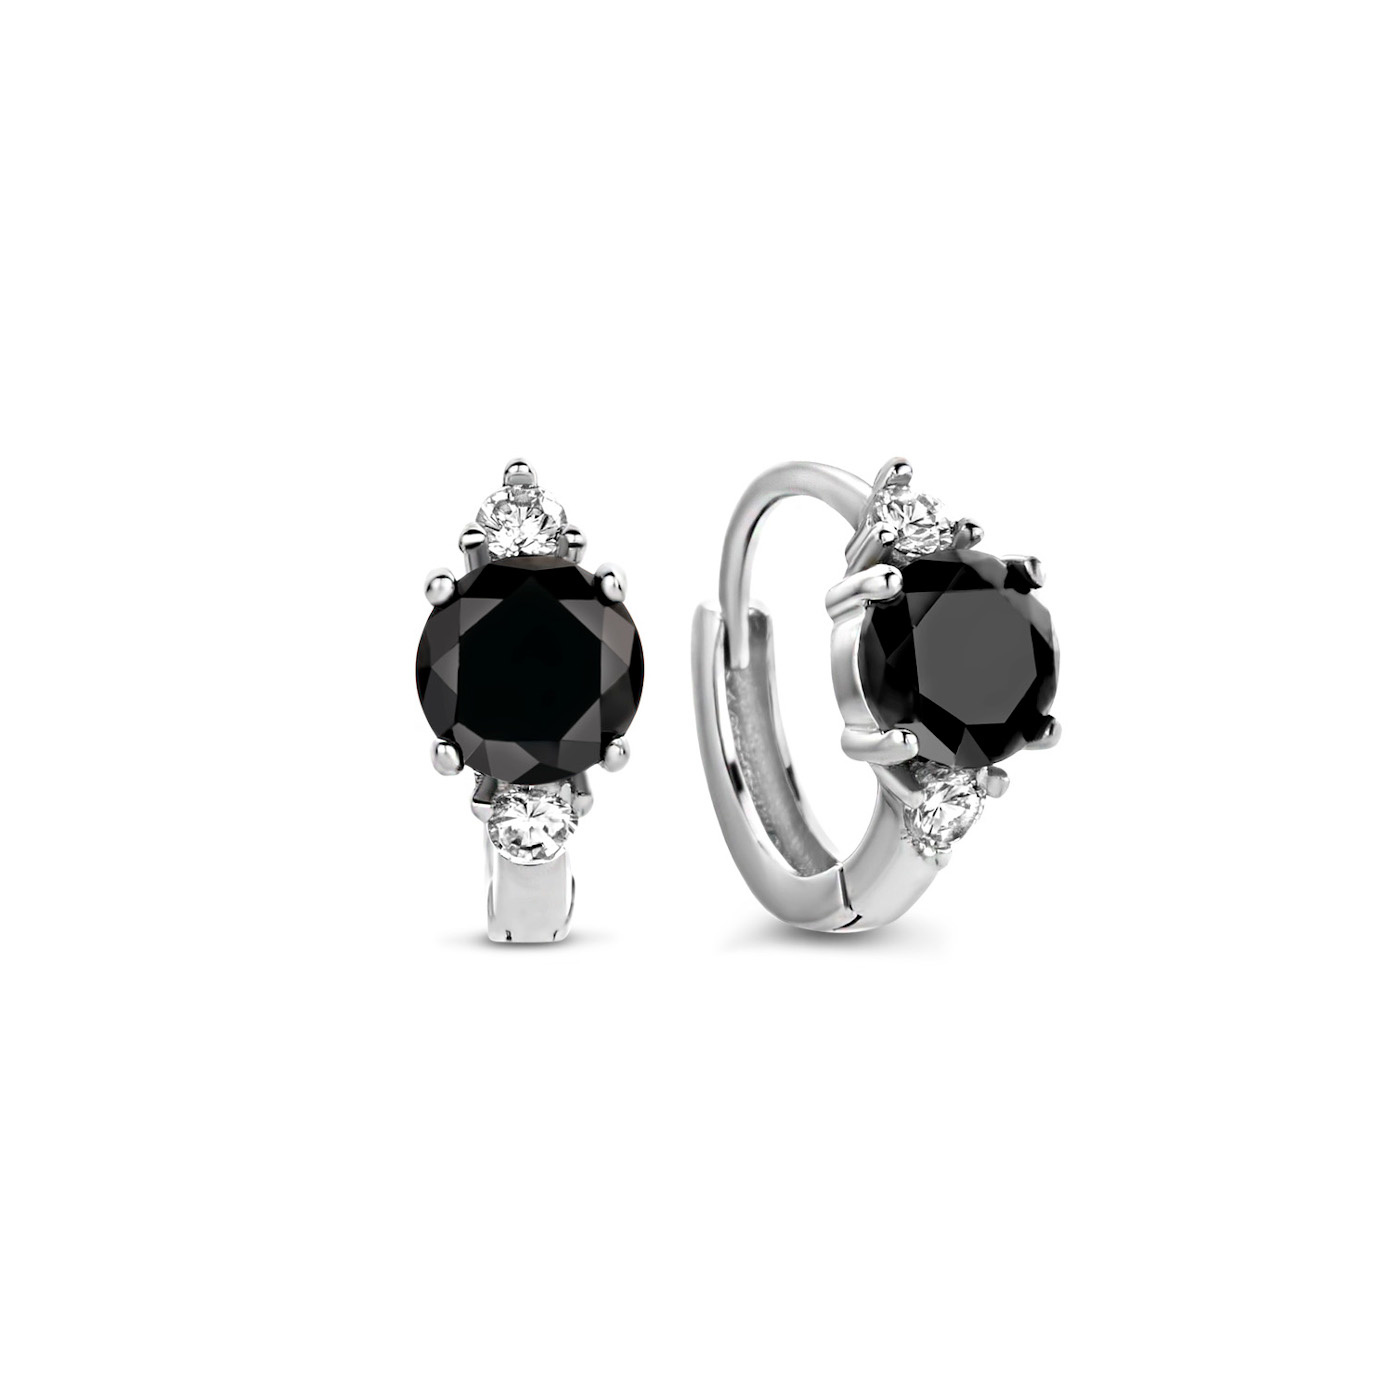 Selected Jewels Mila Sophie 925 sterling silver creoles with black onyx